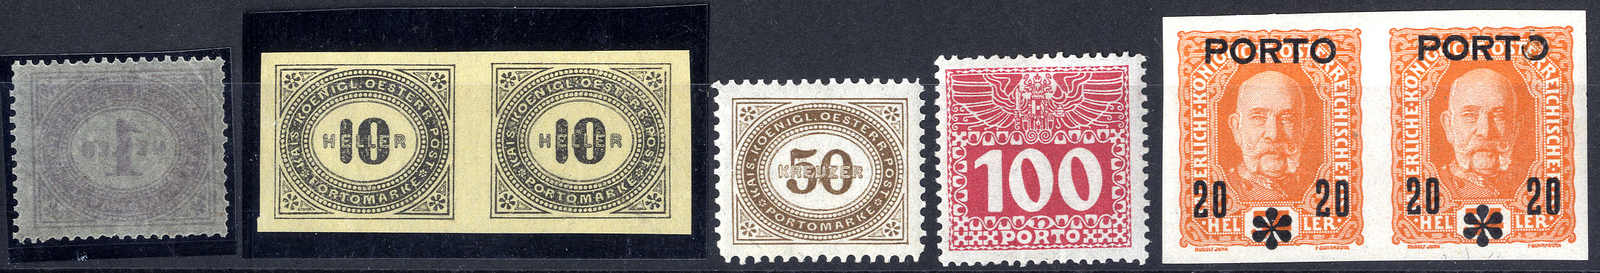 Lot 3877 - Lots and Collections collections and lots austrian areas -  Viennafil Auktionen 63rd LIVE AUCTION